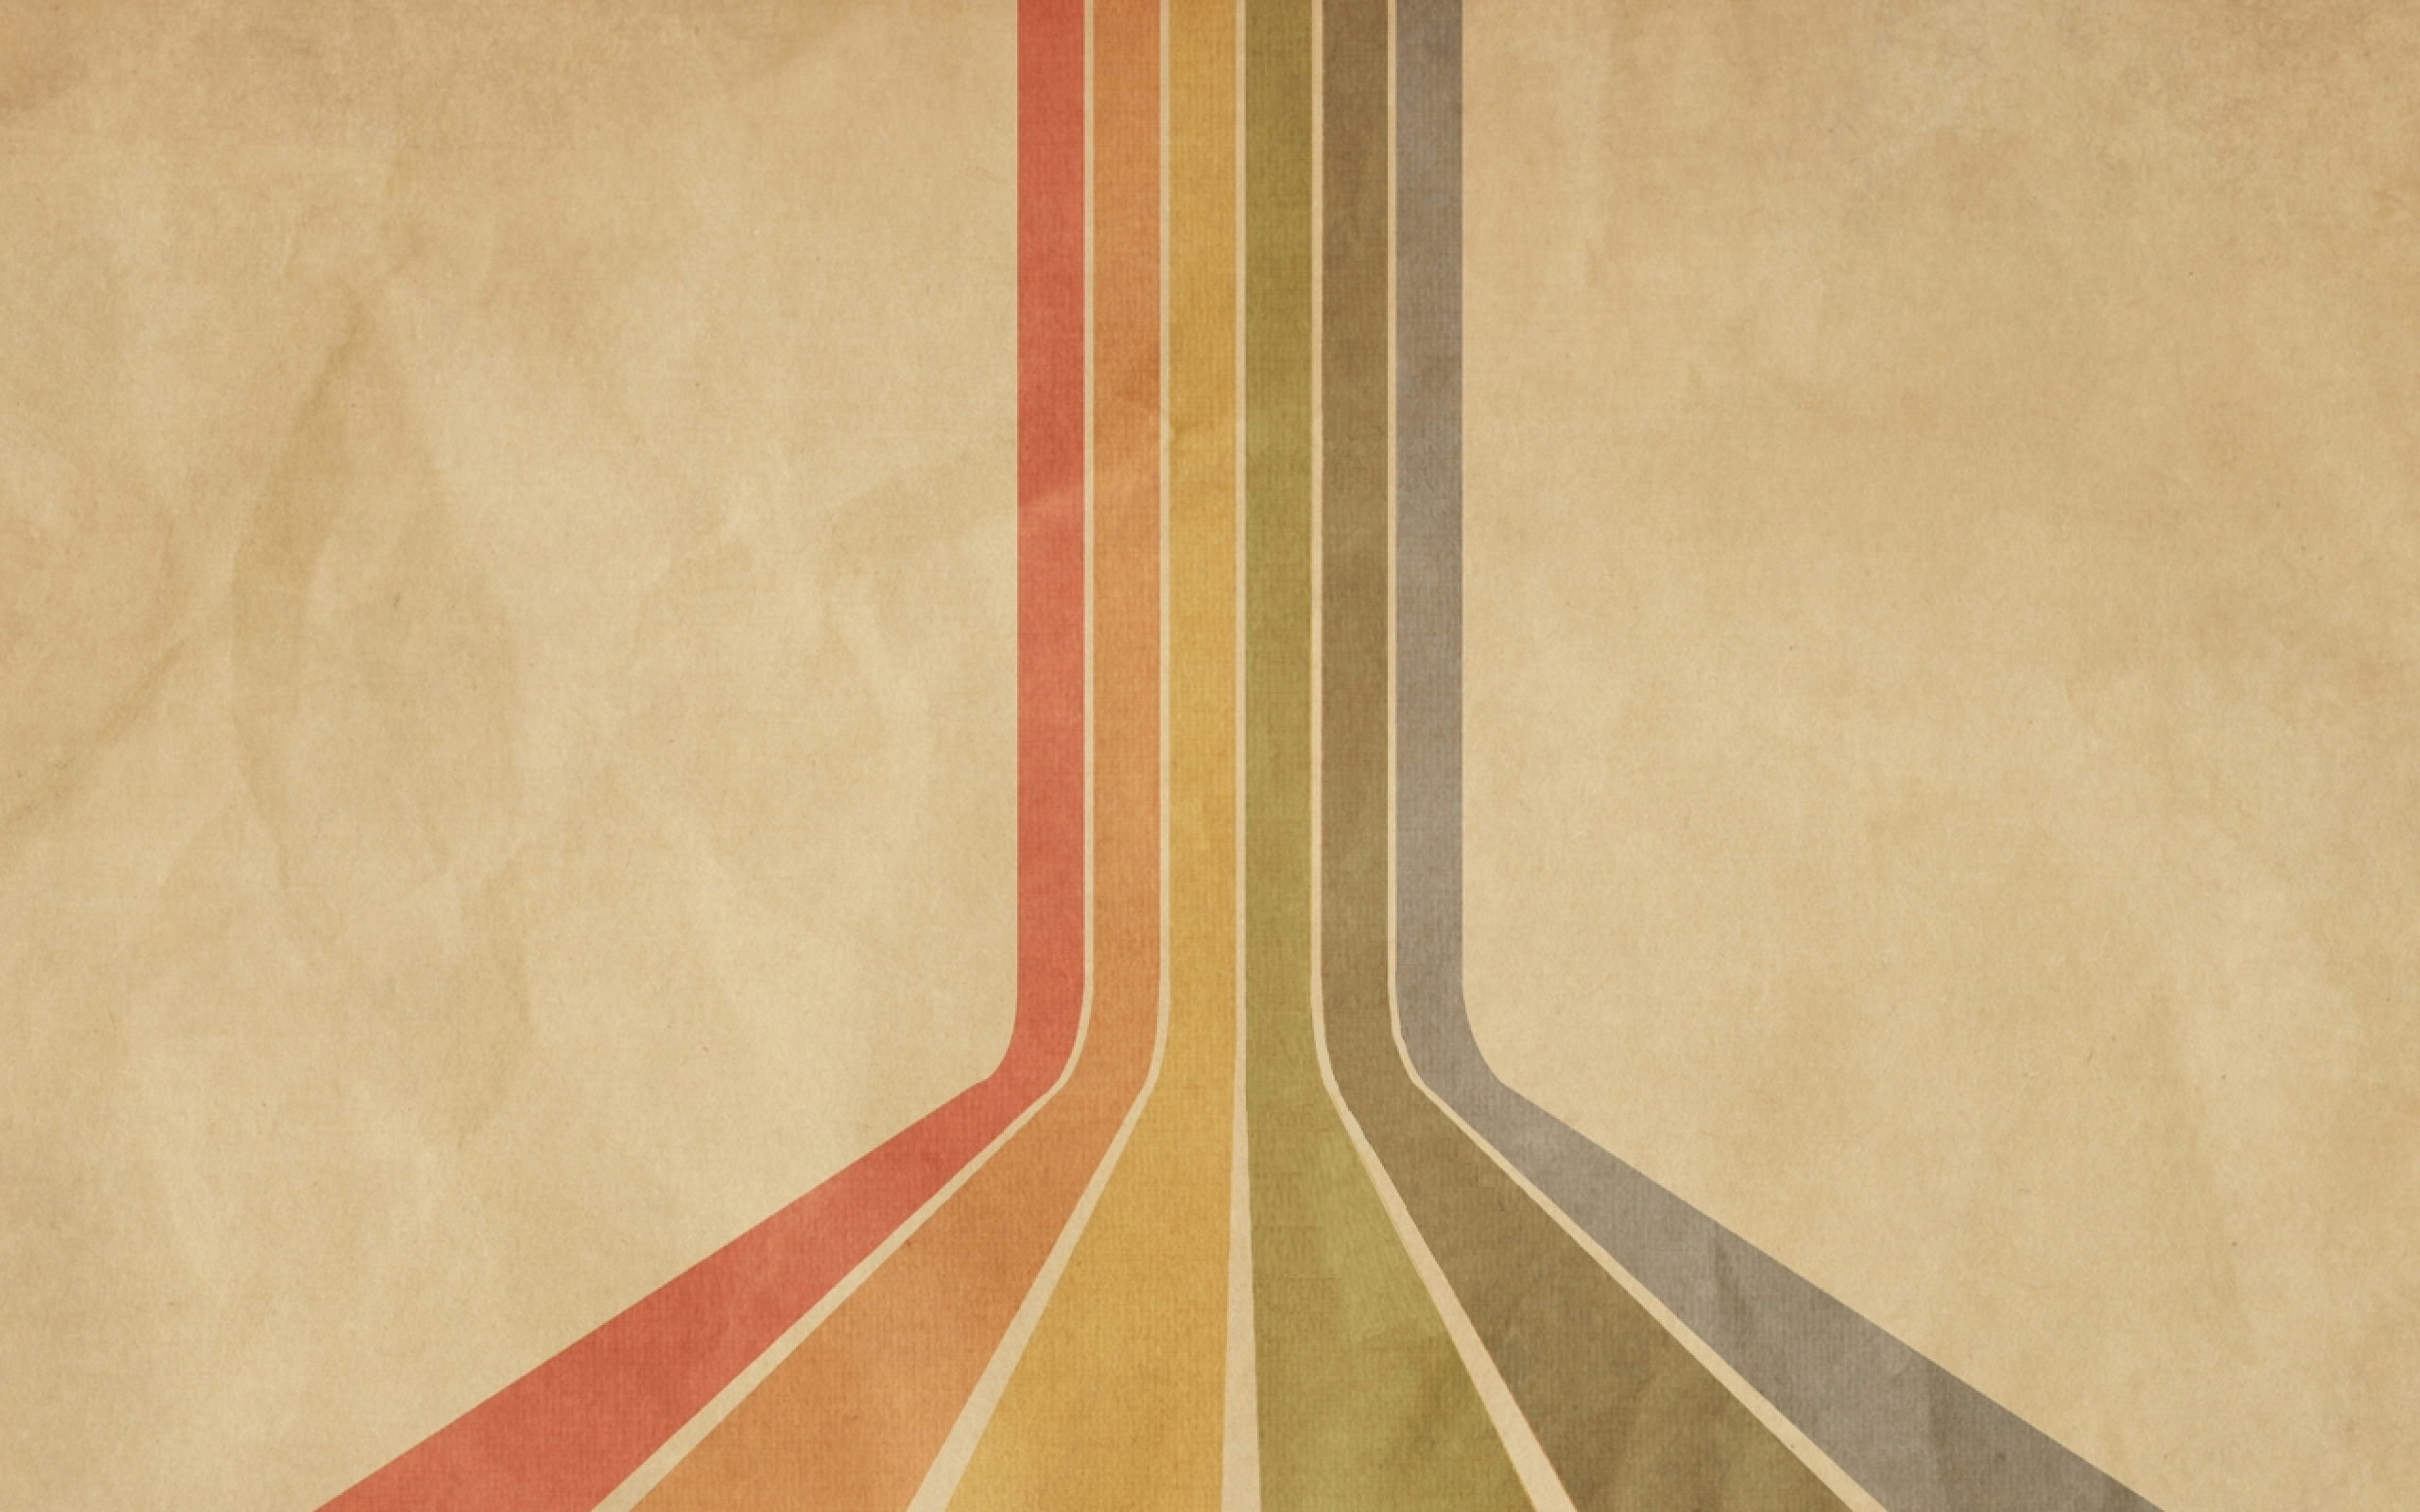 Wallpapers Texturas Retro Striped Texture X Free 2560x1600